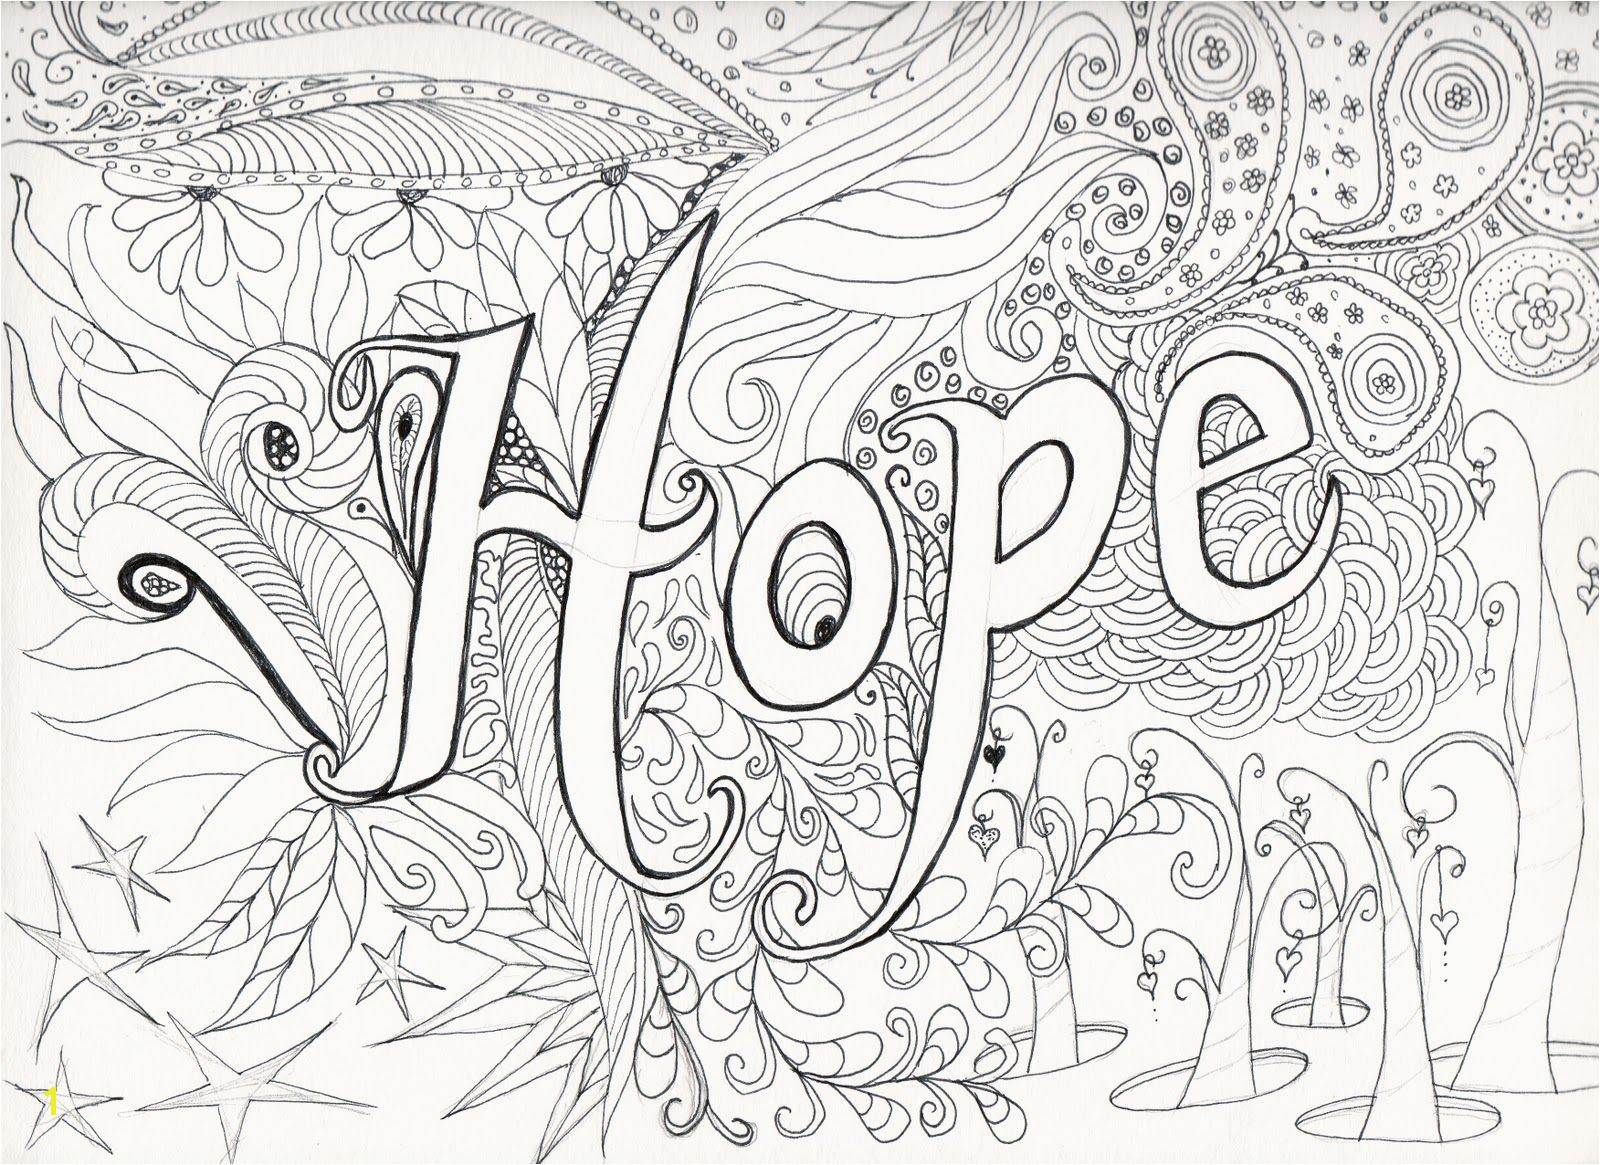 Super Hard Abstract Coloring Pages for Adults Hard Coloring Pages Free Coloring Pages